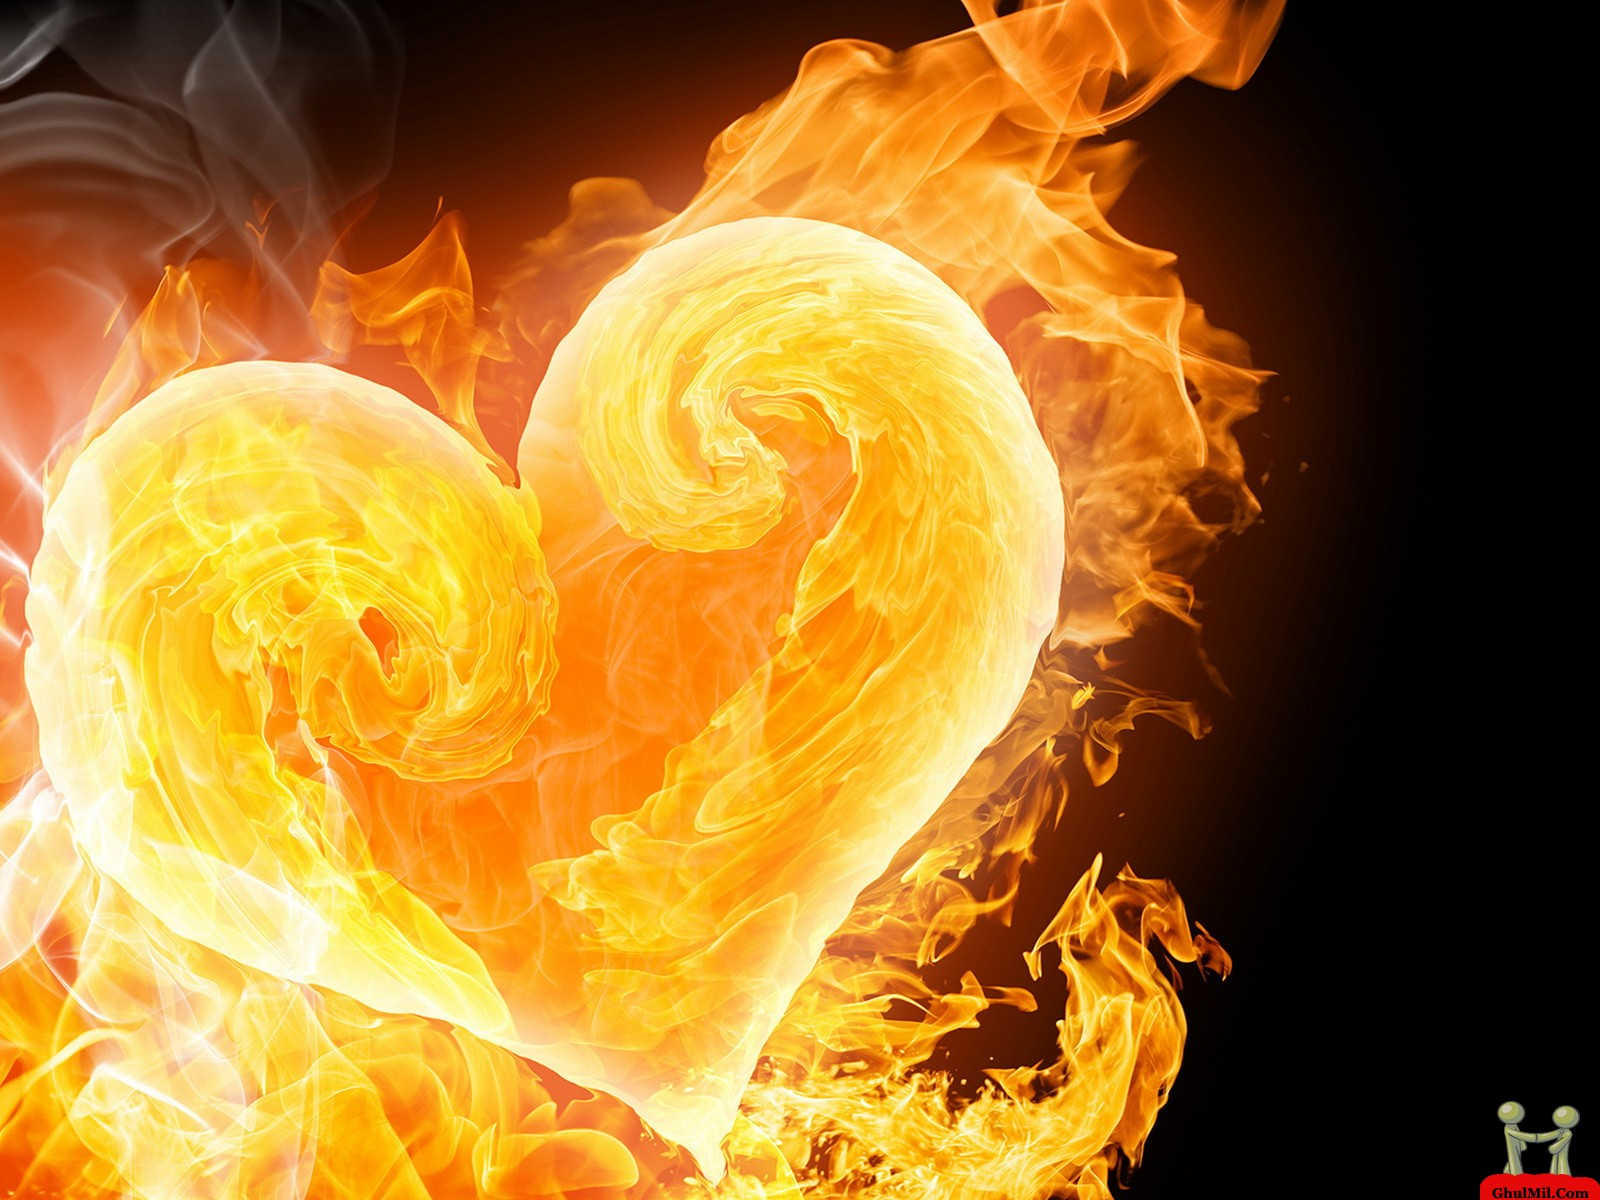 Burning Love Hd Wallpapers: Sue's News, Views 'n Muse: Wildfire